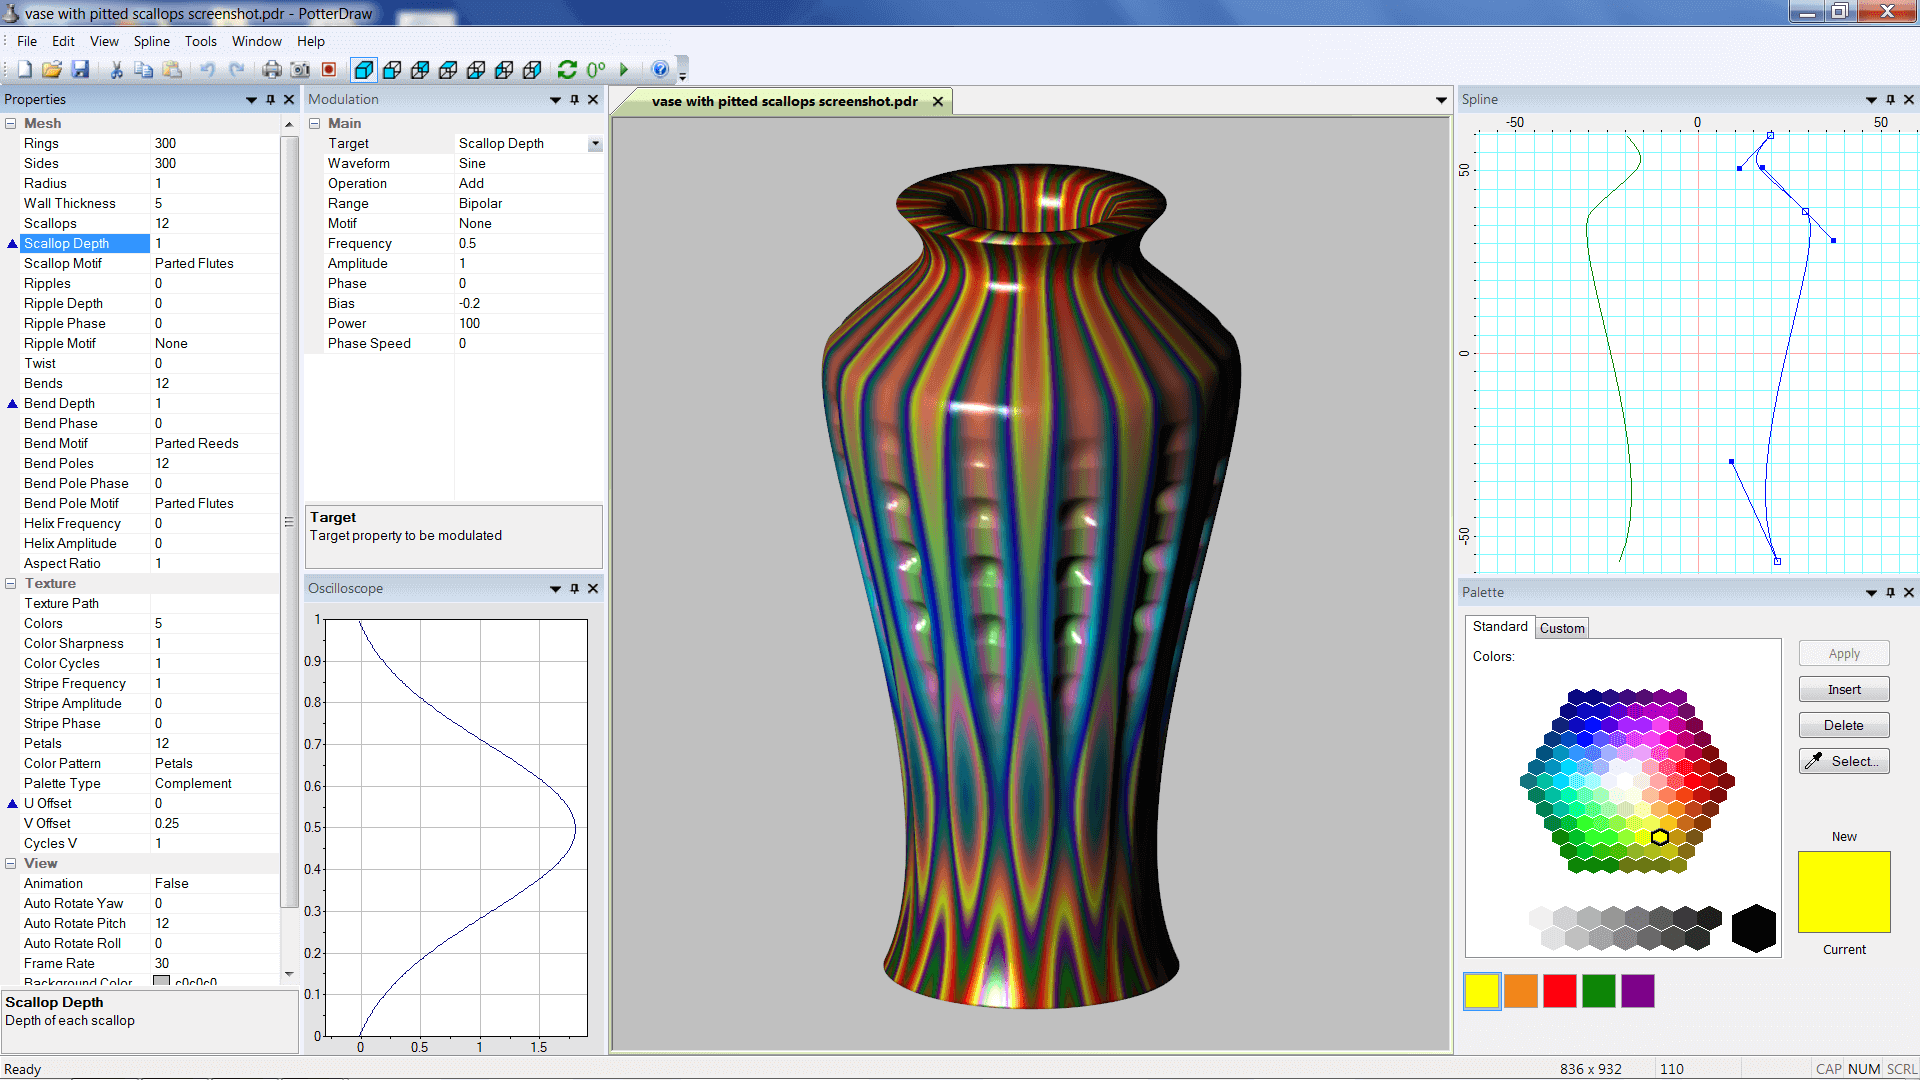 Free PotterDraw Software Lets you Design Vases In No Time | All3DP